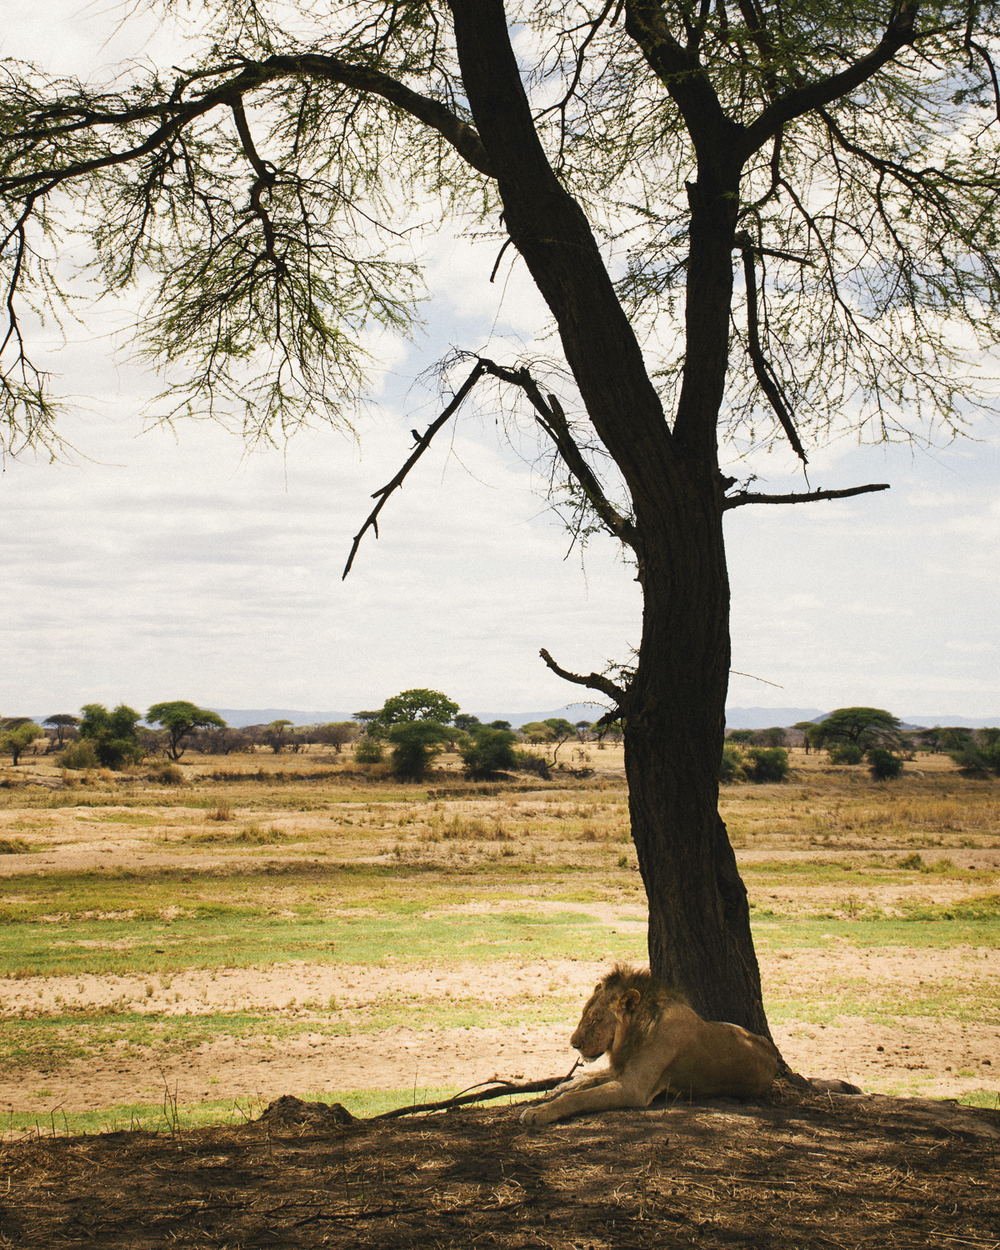 Ruaha National Park, Iringa;  November 2015